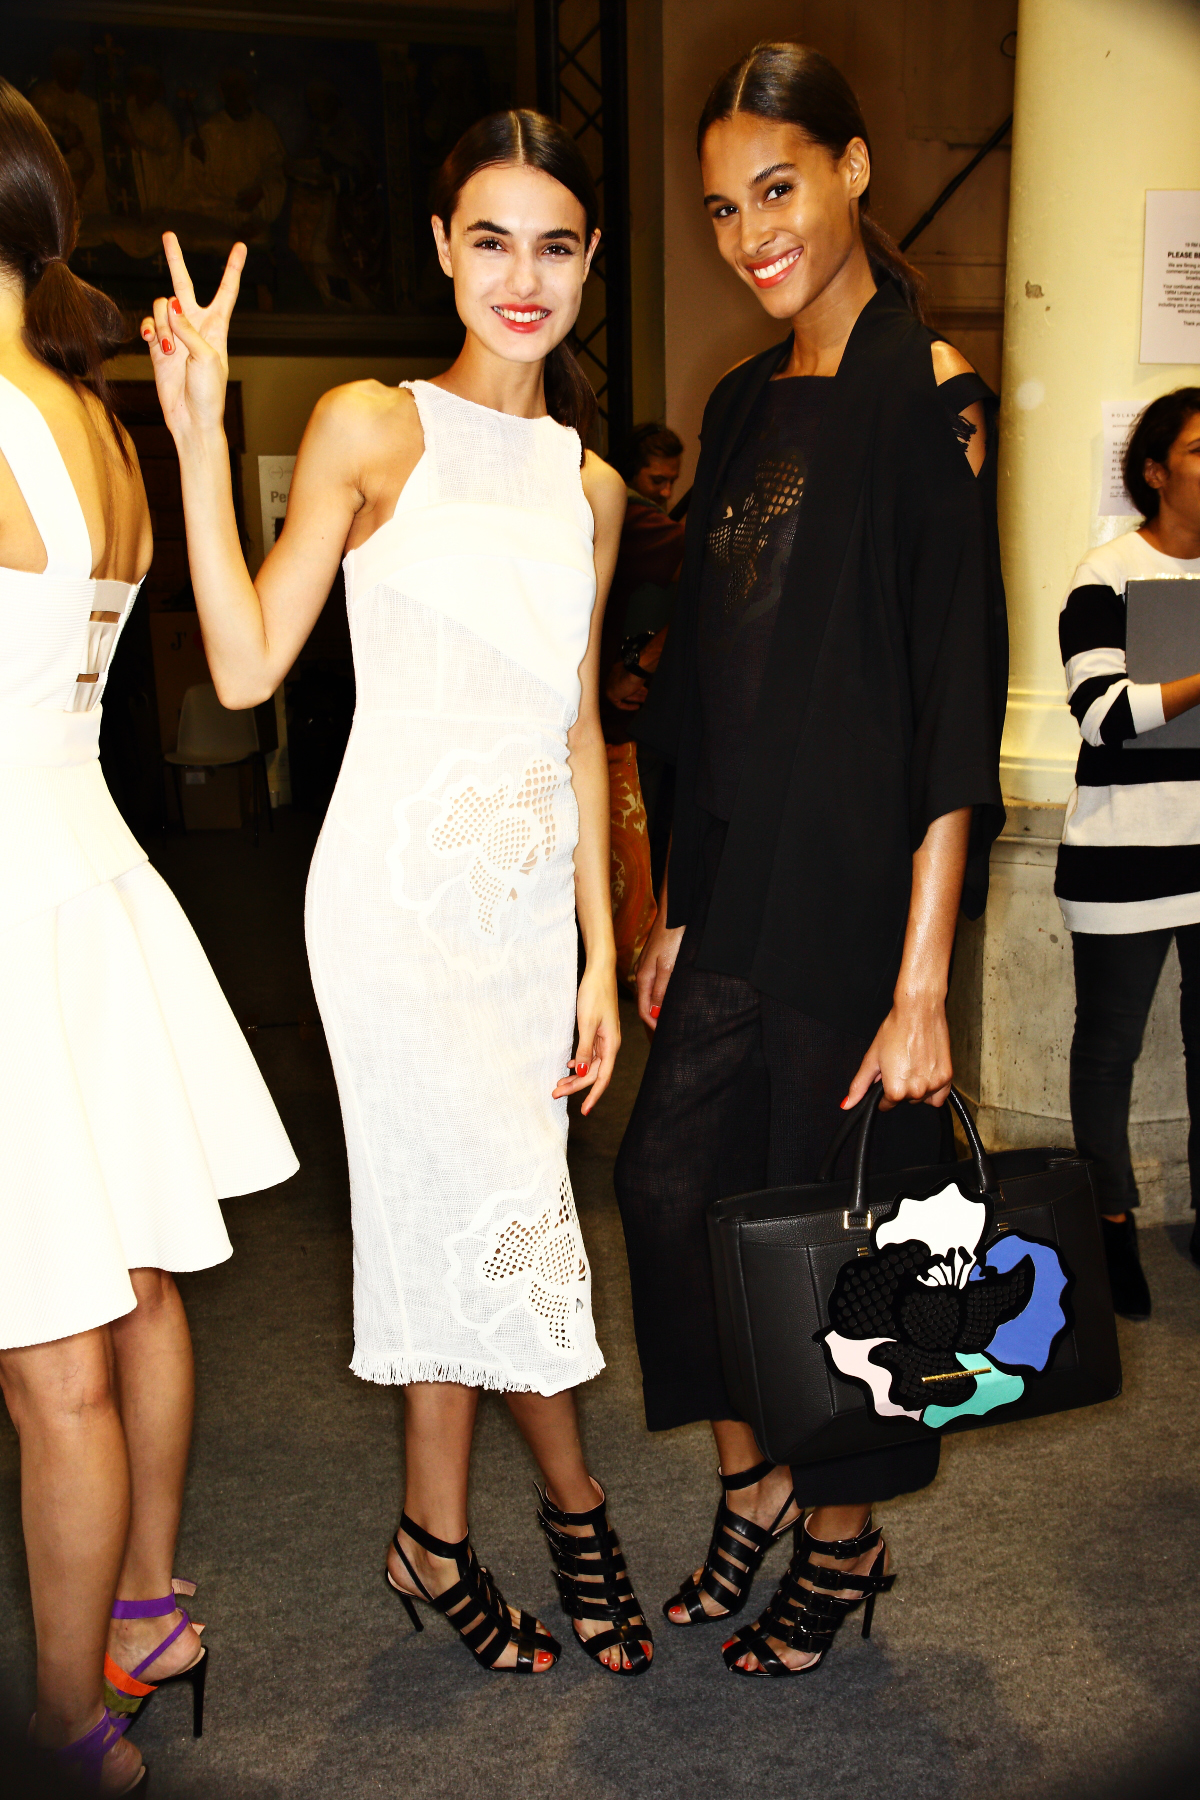 Roland Mouret SS15 Fashion Show Paris Backstage